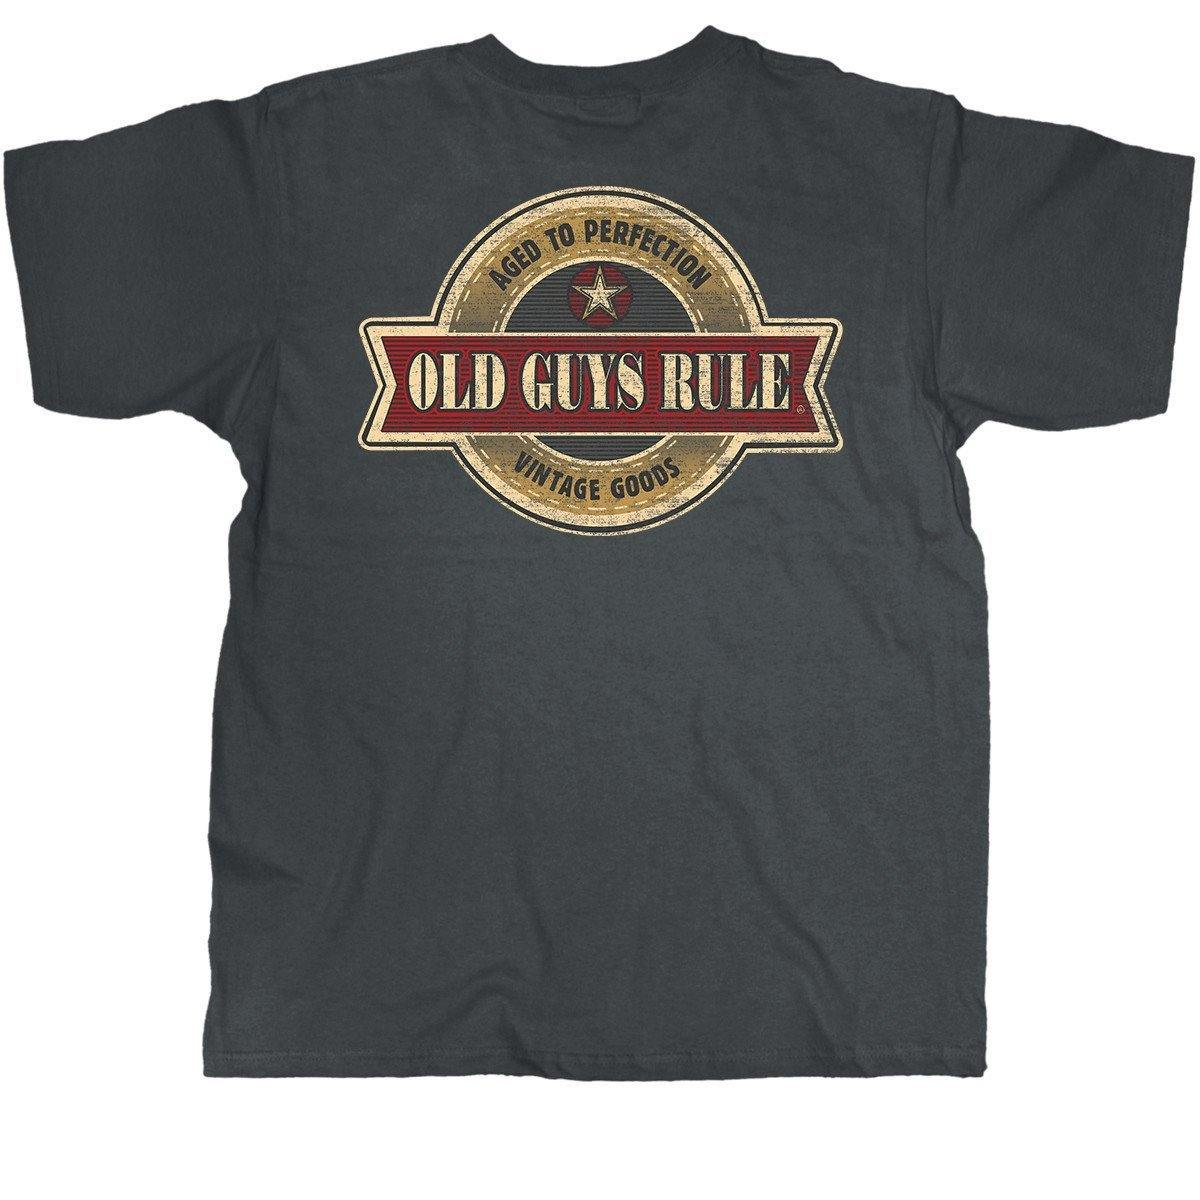 Old Guys Rule - Aged To Perfection - Vintage Goods - Charcoal T-Shirt - Design